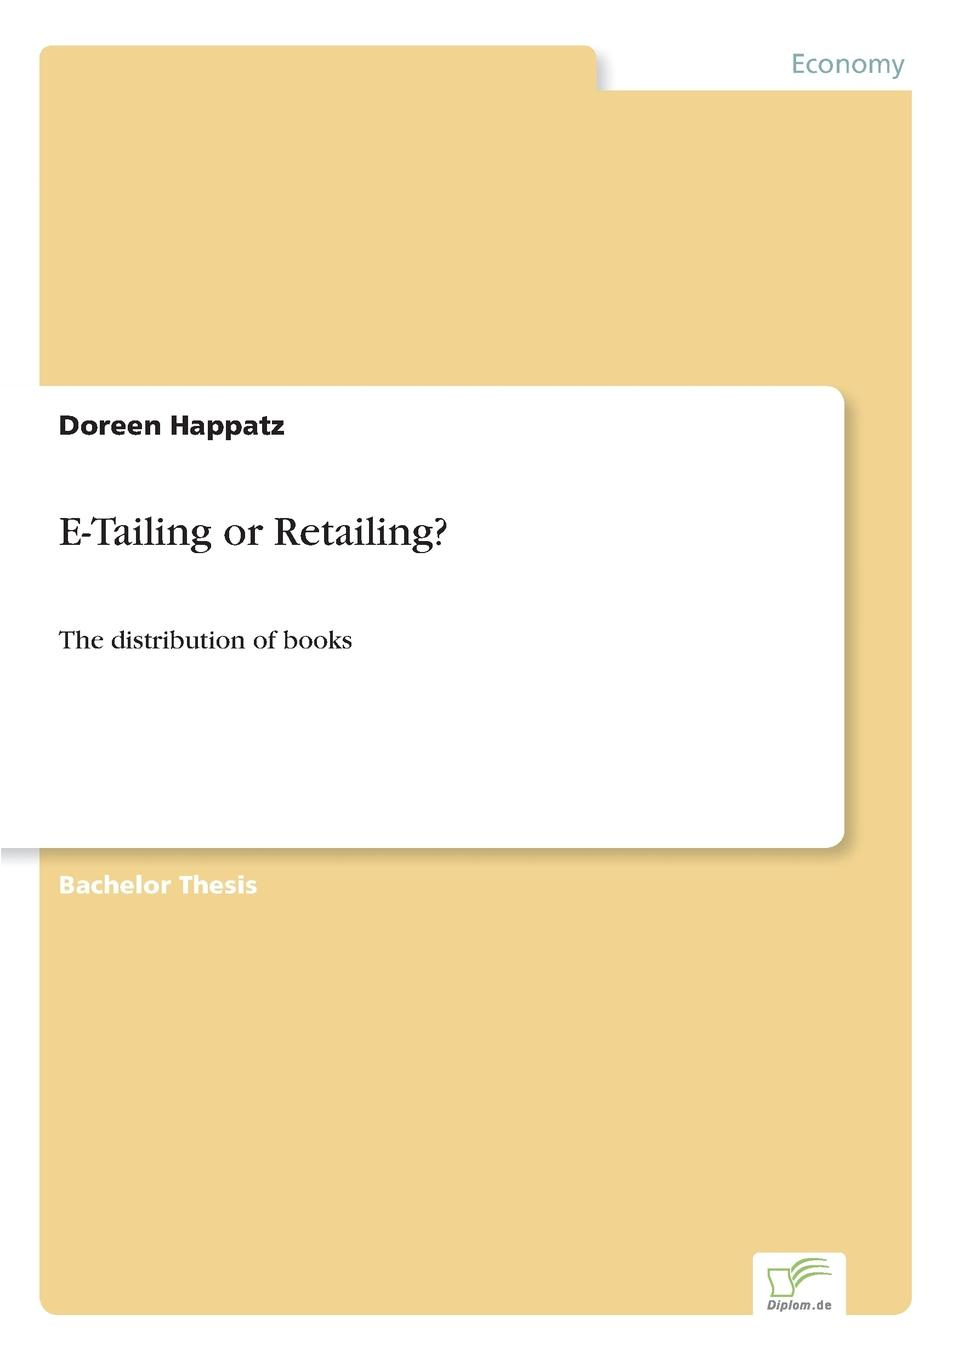 E-Tailing or Retailing. Inhaltsangabe:Abstract:Already in 1996, when the full impact of...